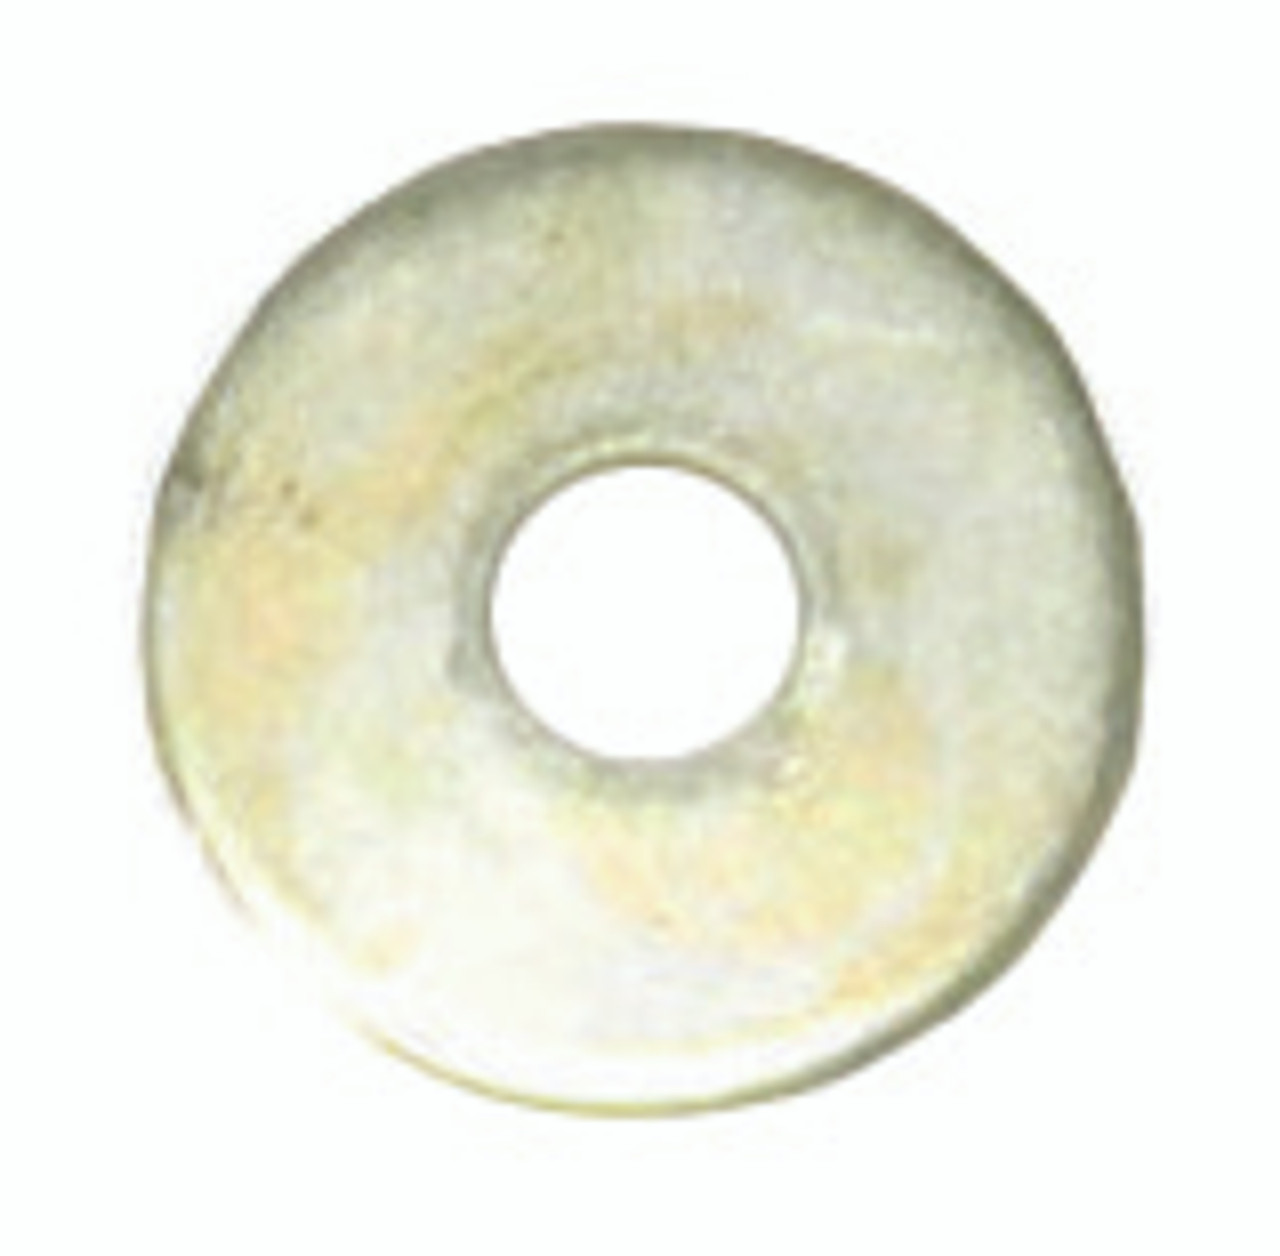 5-64 --- Flat Washer for Dexter Free Backing Hydraulic Brakes